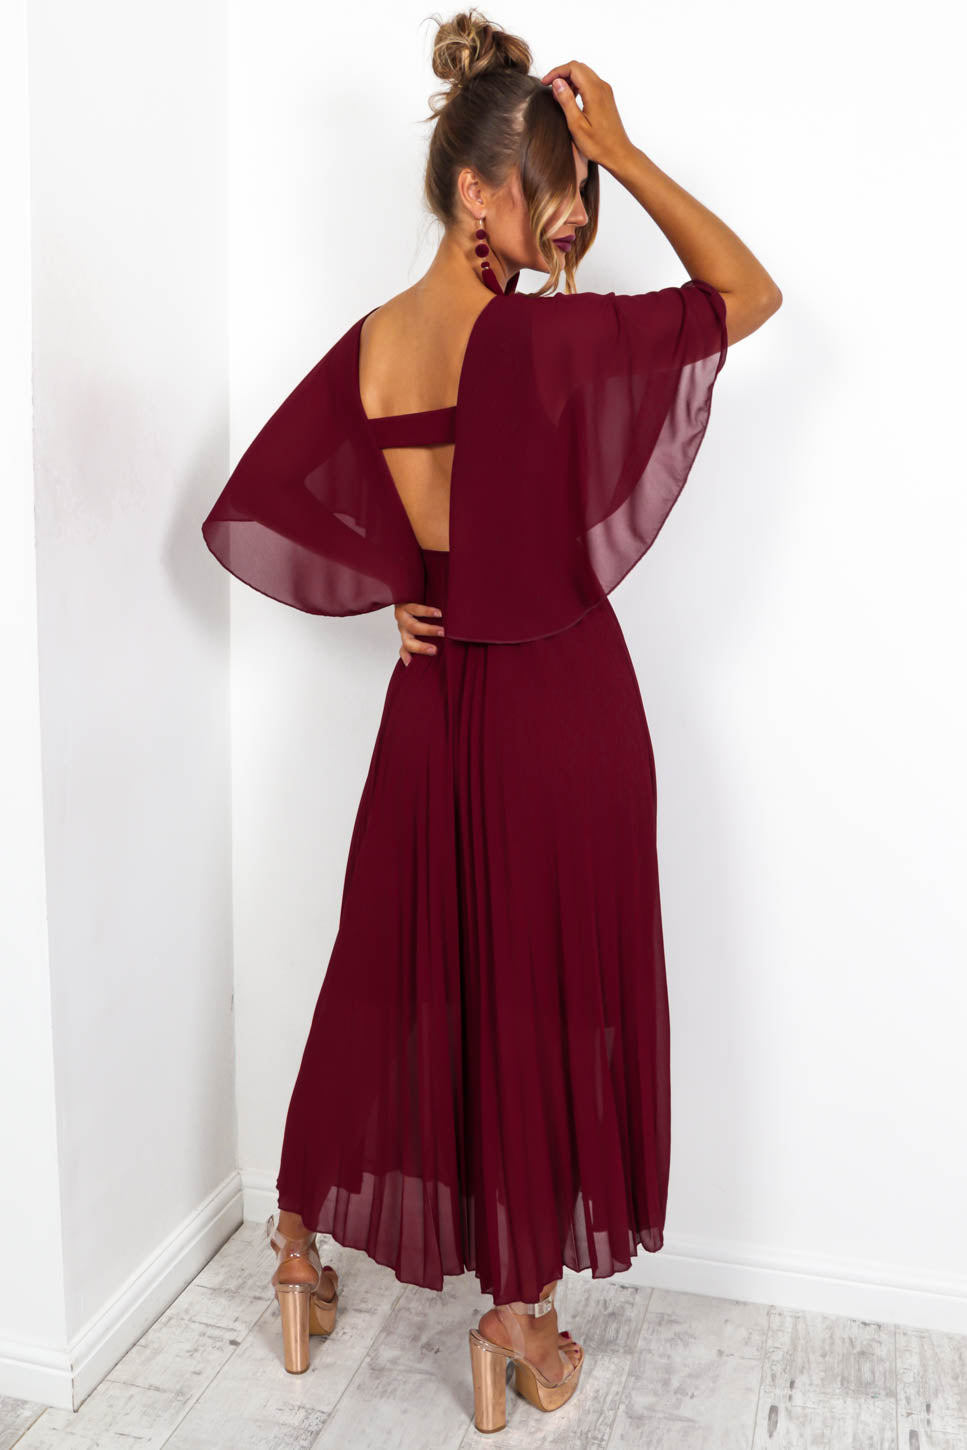 https://cdn.shopify.com/s/files/1/0062/6661/7925/files/product-video-timeless-maxi-dress-in-wine.mp4?5114